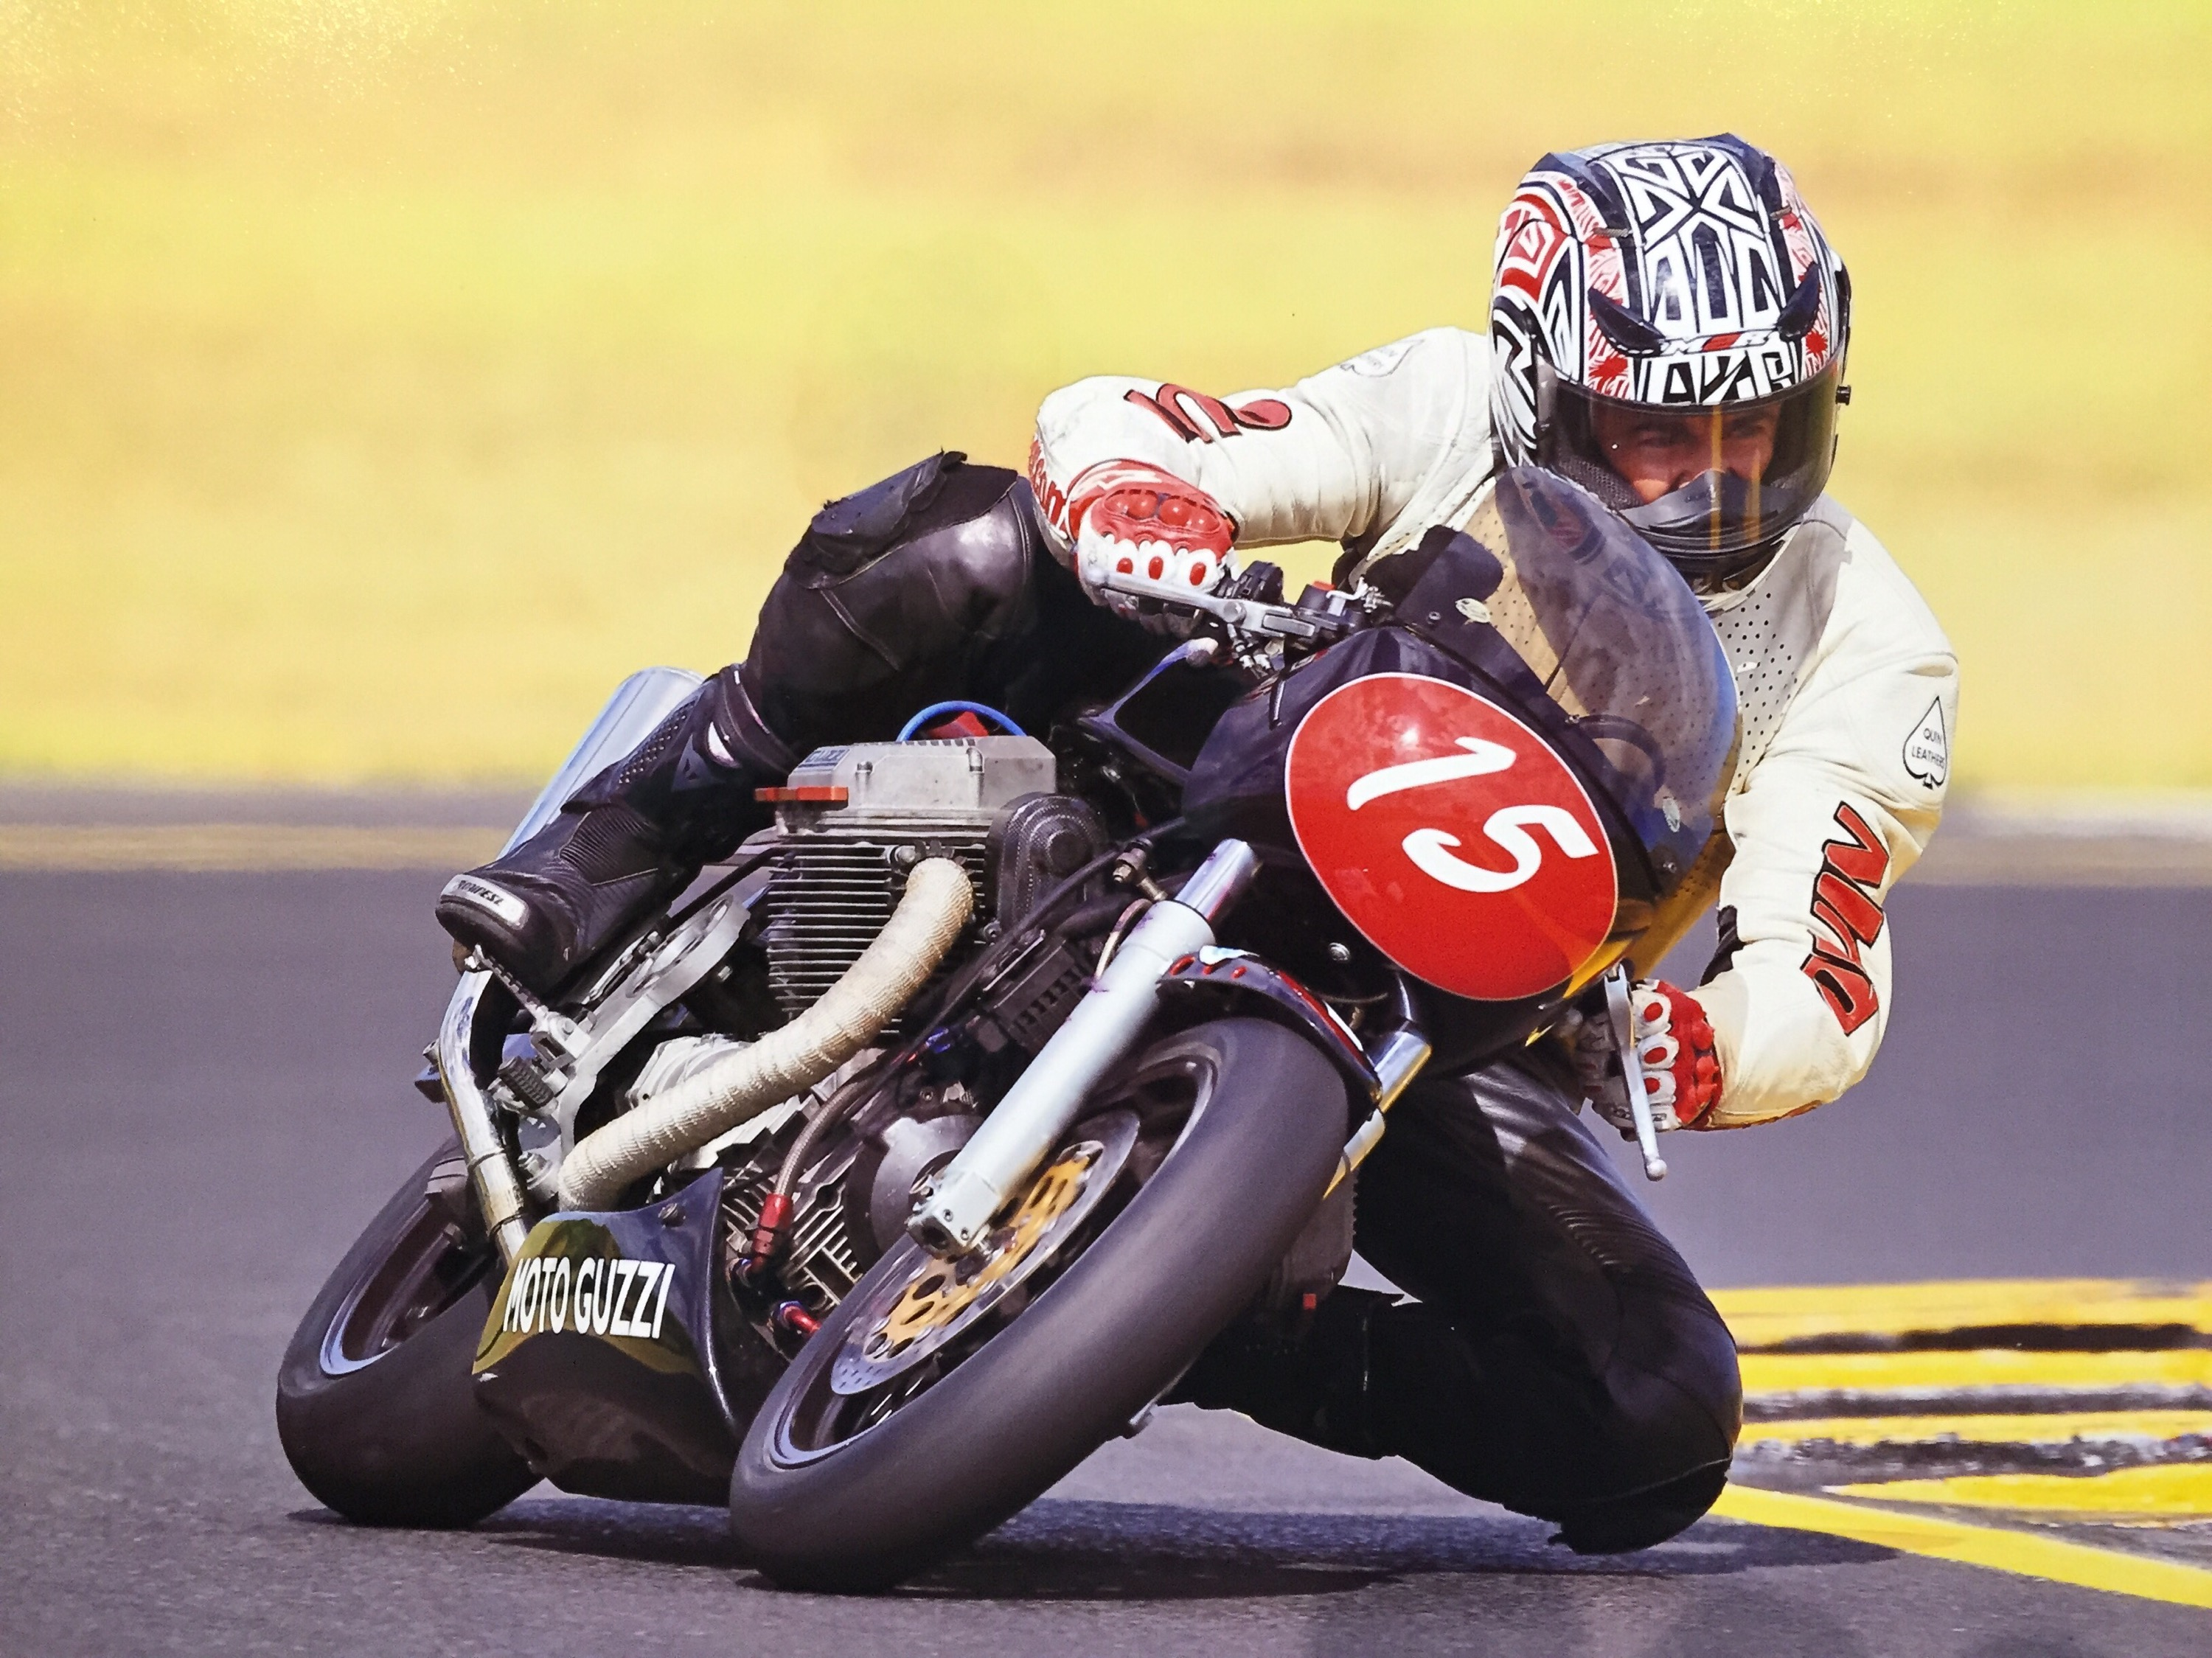 Barry Sheene Festival of Speed 2015